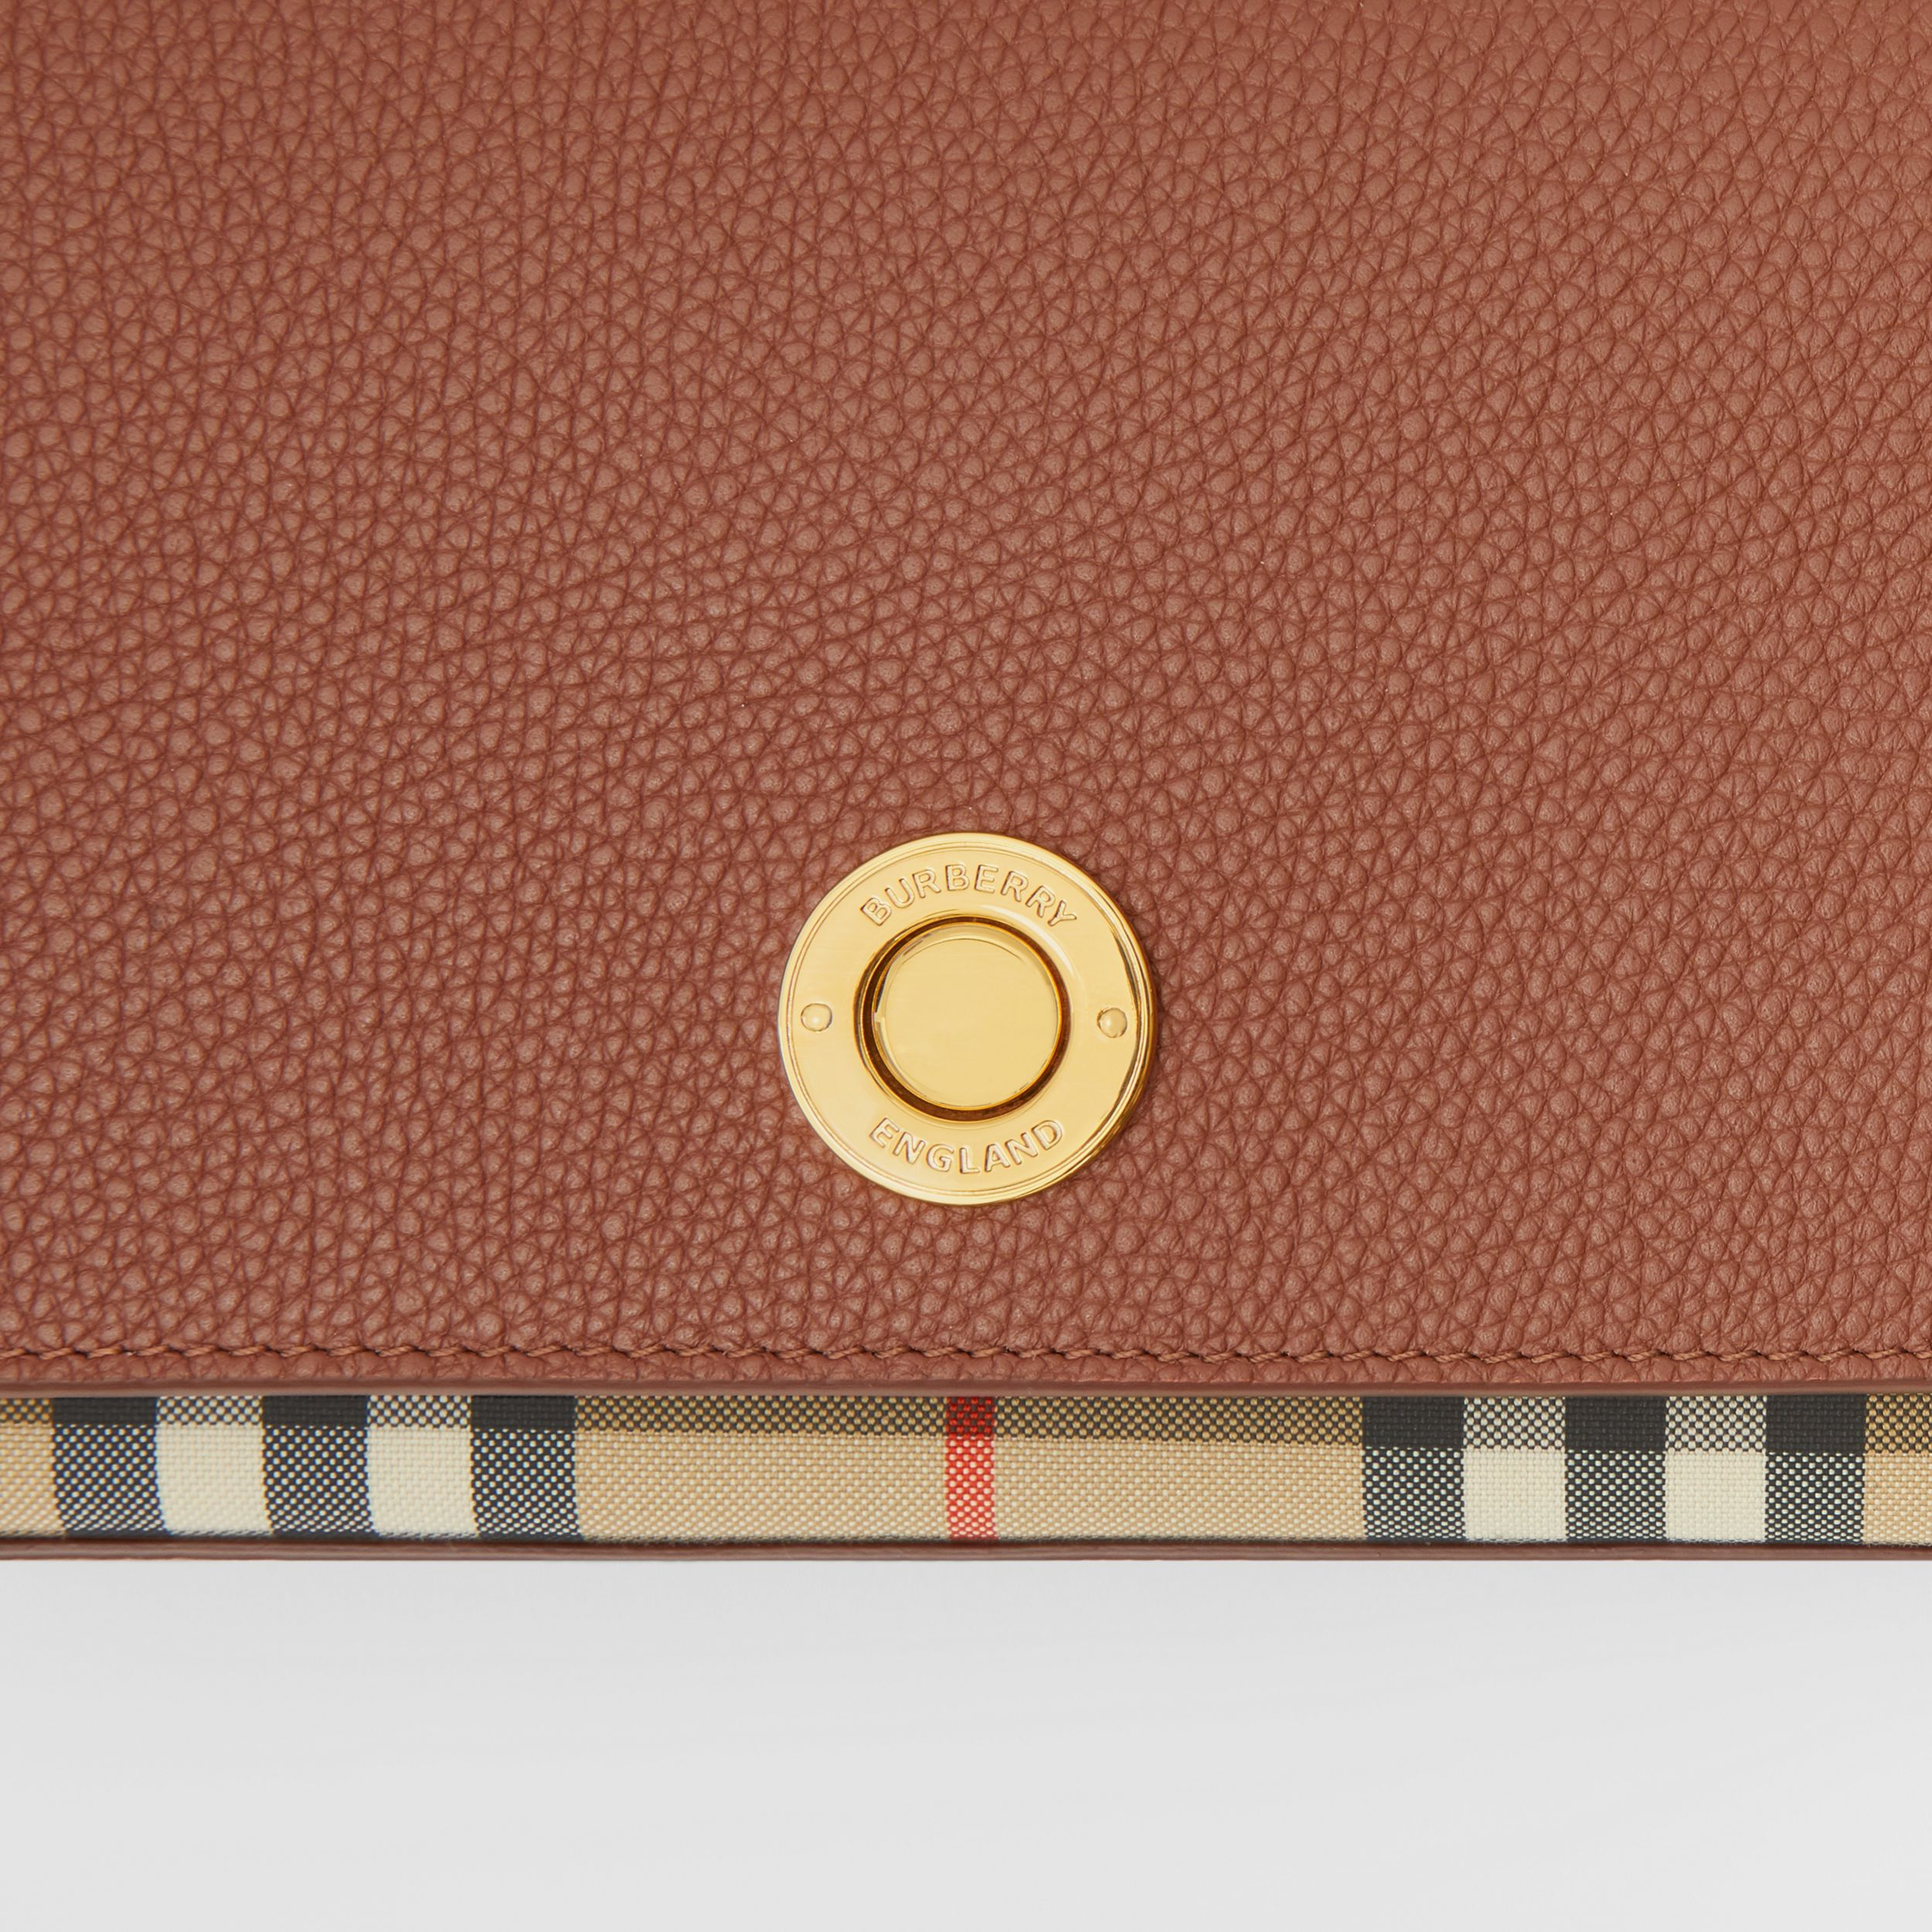 Small Leather and Vintage Check Crossbody Bag in Tan - Women | Burberry Australia - 2